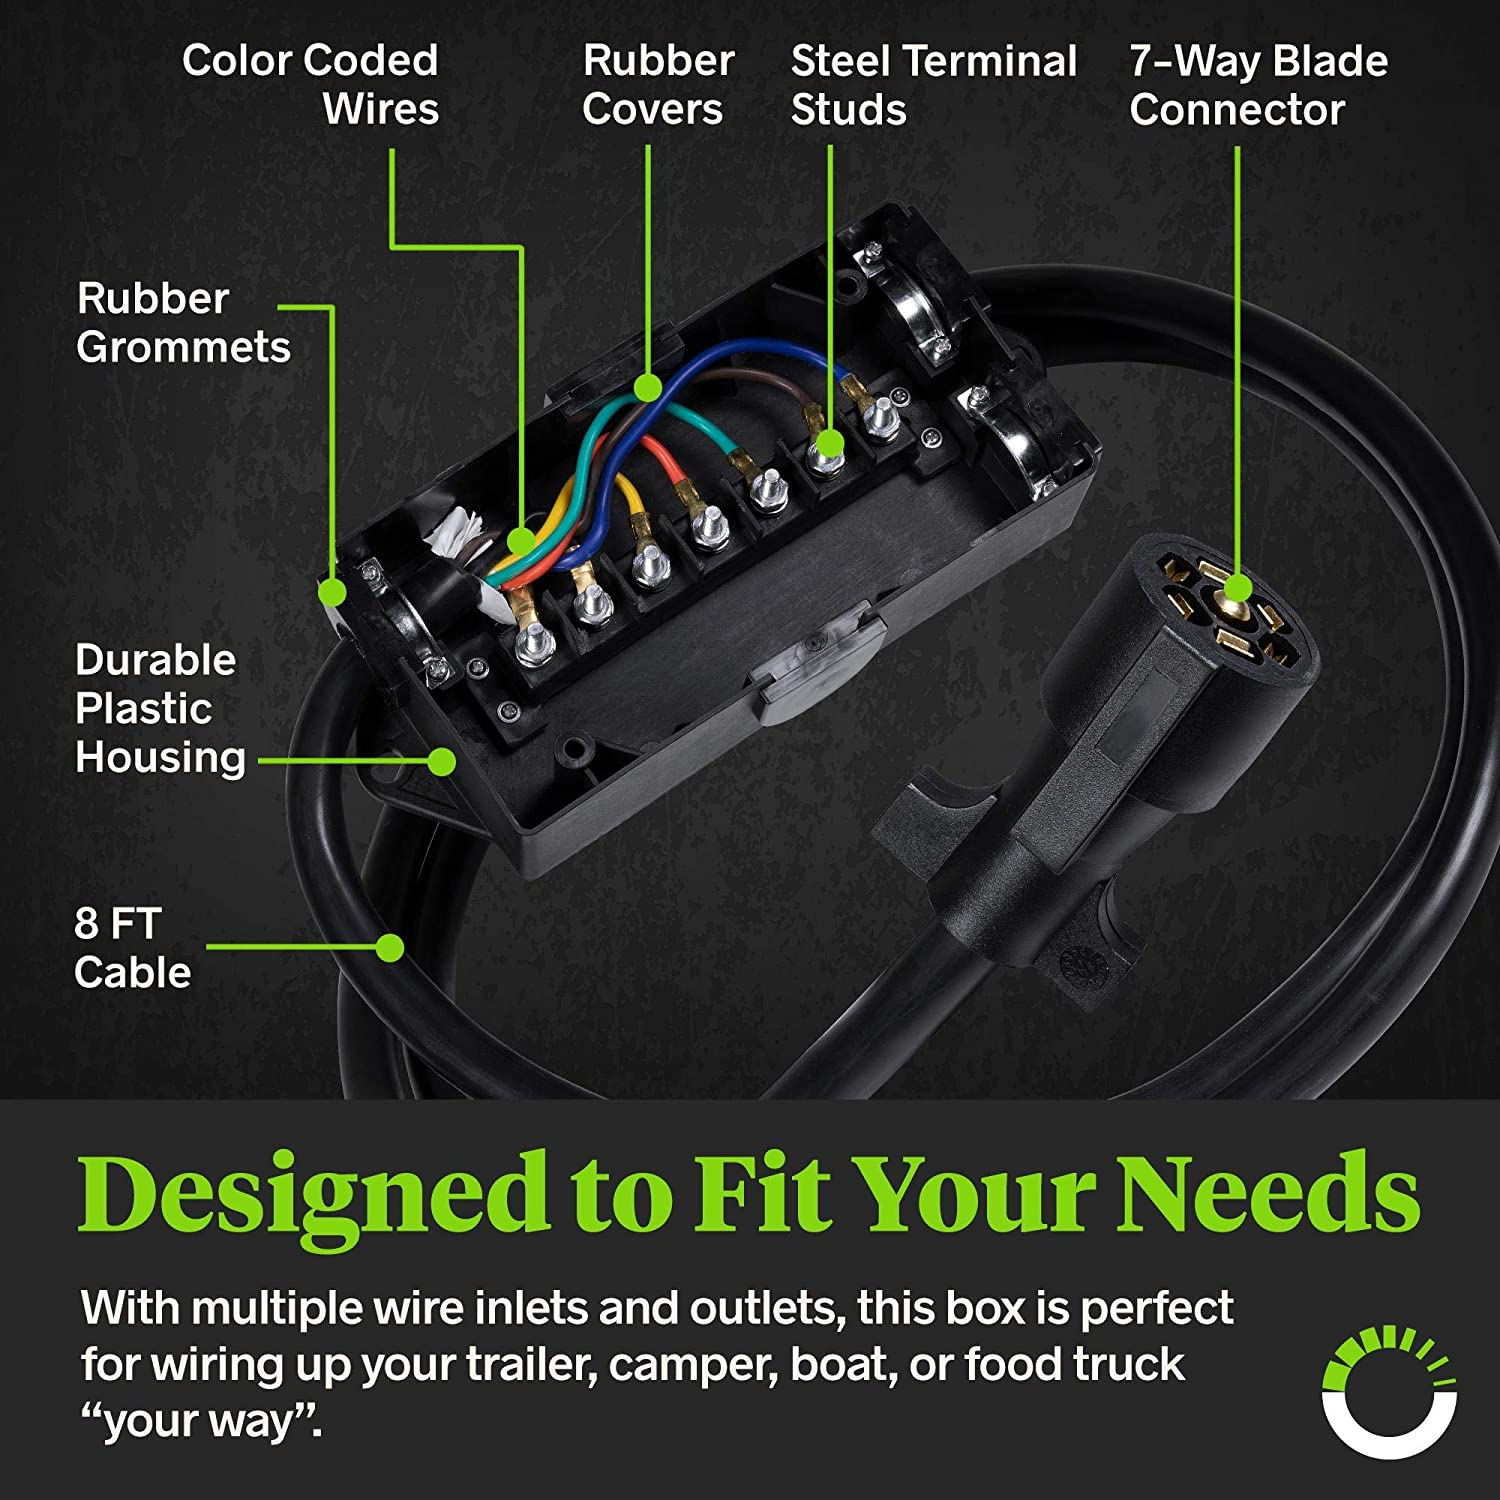 Amazon.com: ONLINE LED STORE 7-Port Trailer Wiring Junction Box w/ 8ft Cord  [Steel Studs] [Stickers Included] [Weatherproof] Trailer Wire/Cable  Connection ...